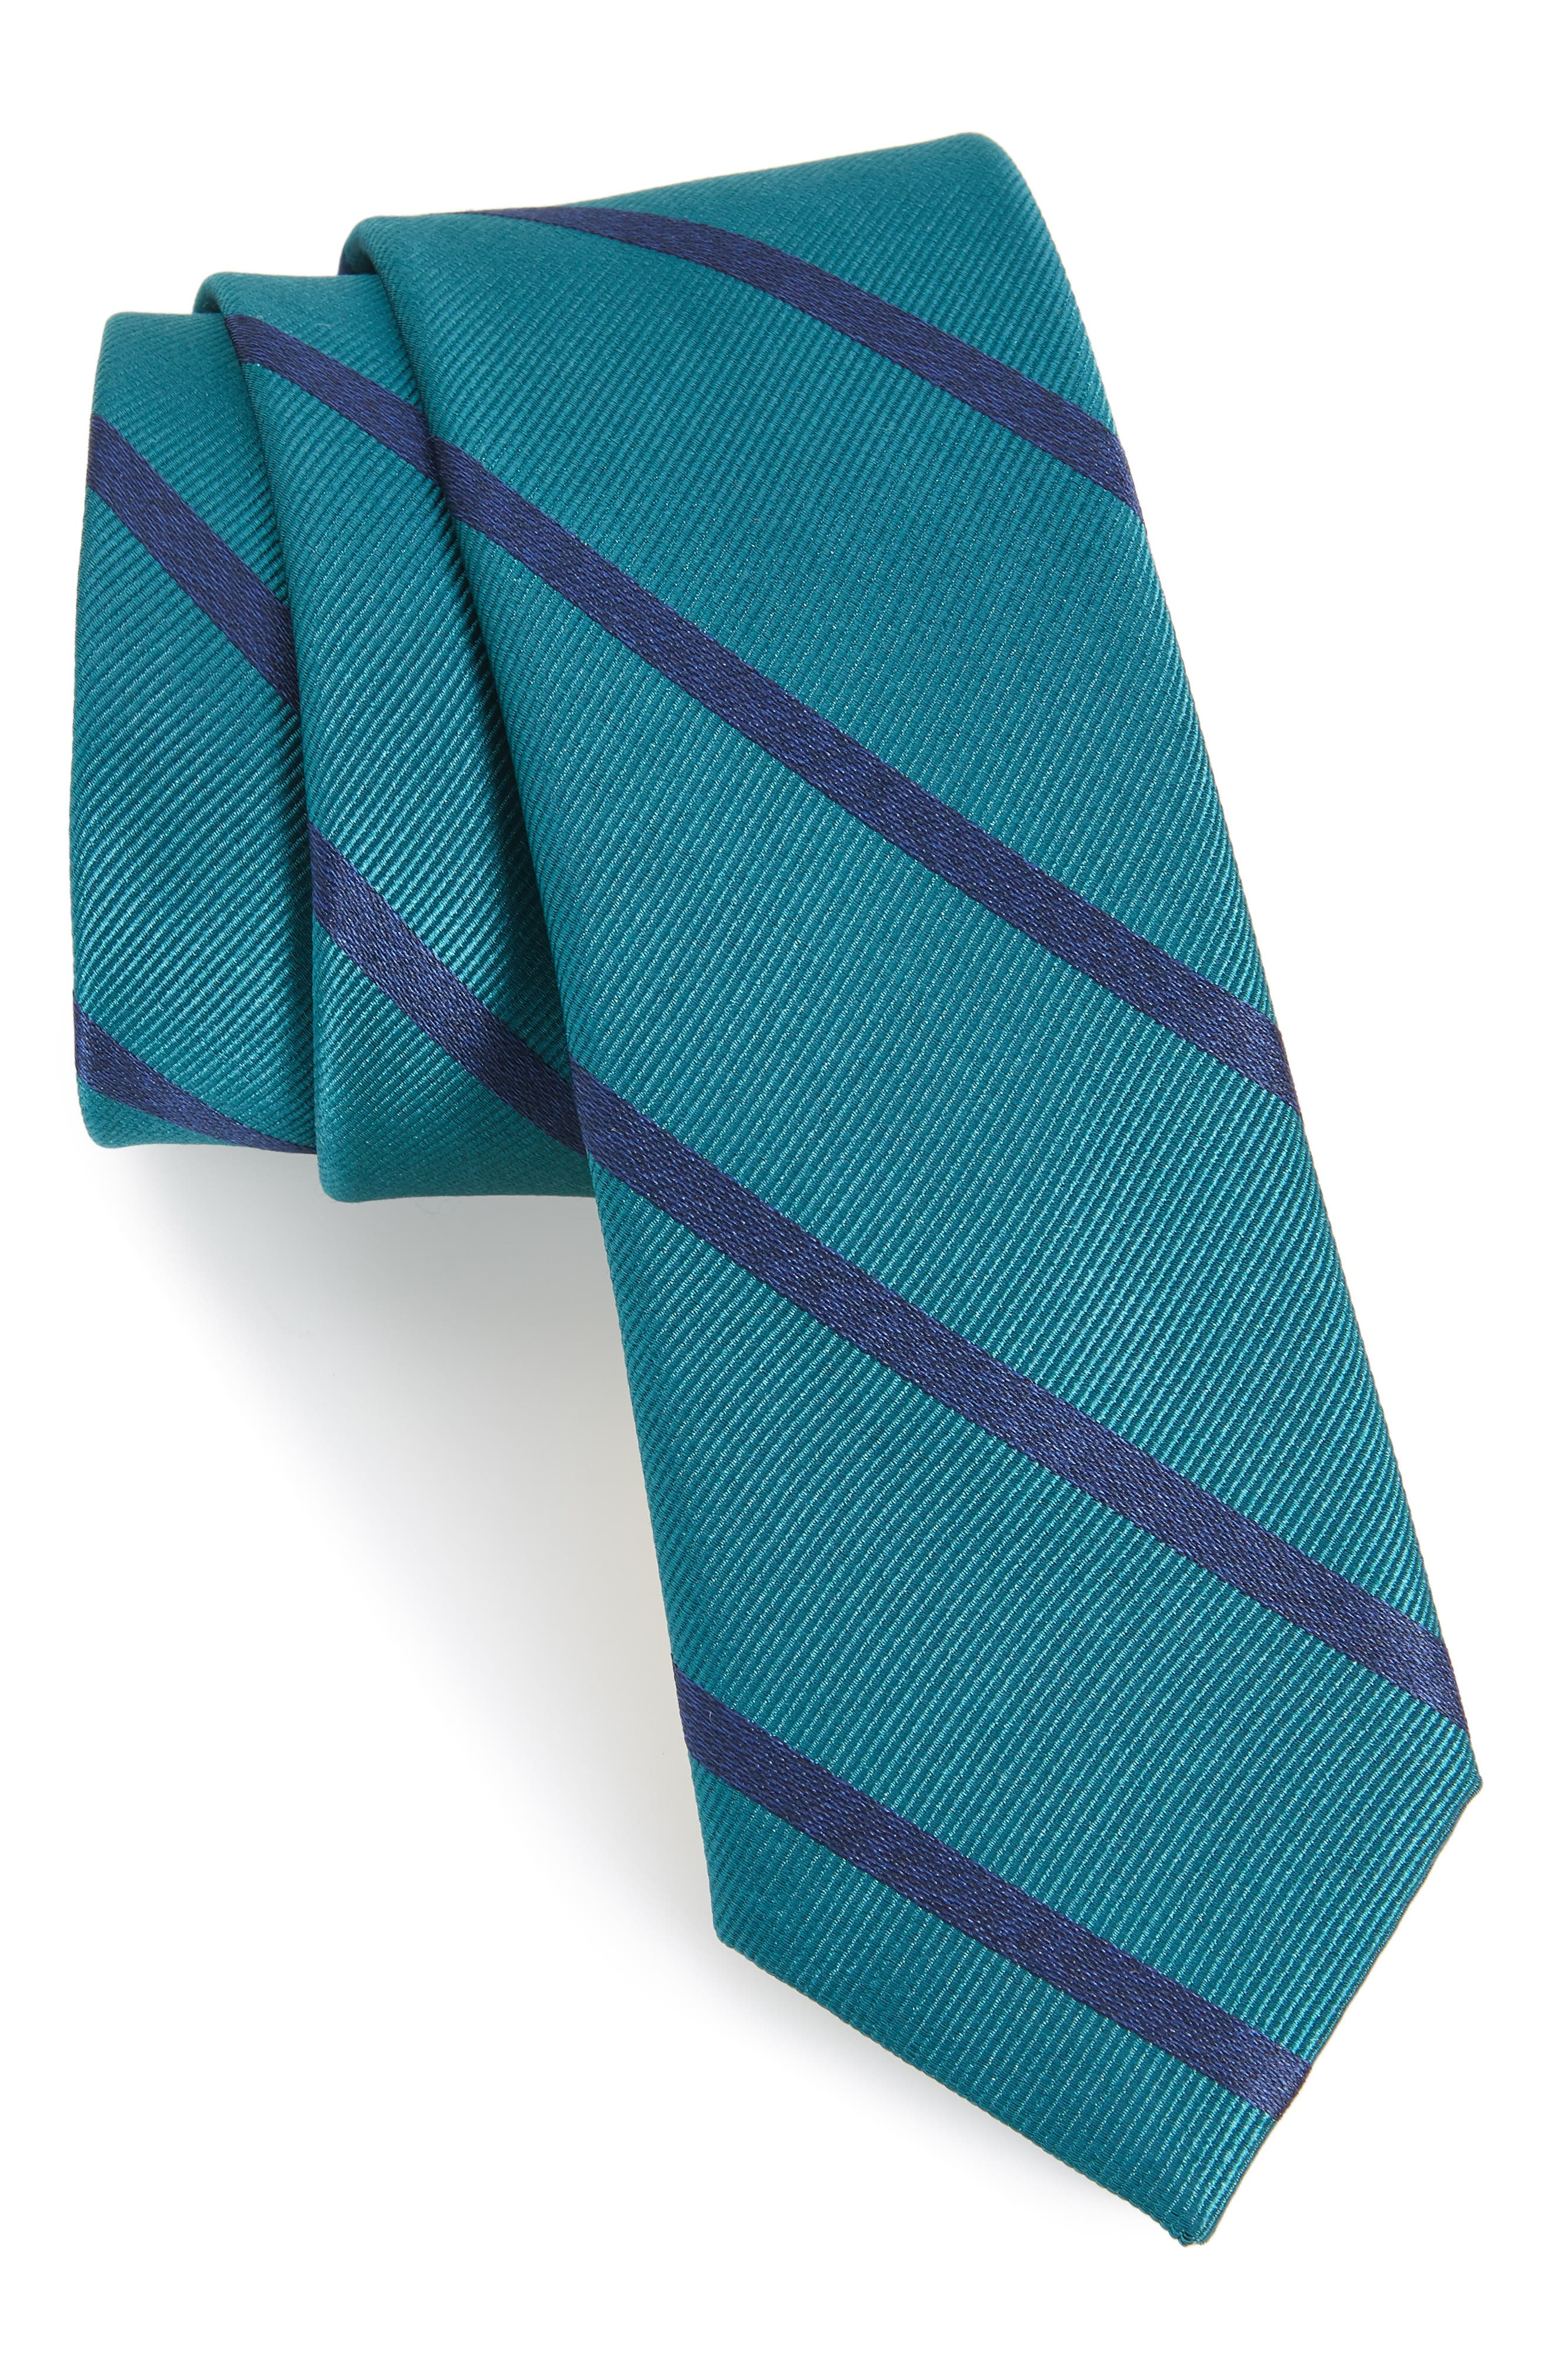 Wheelhouse Stripe Silk Skinny Tie,                         Main,                         color, Teal